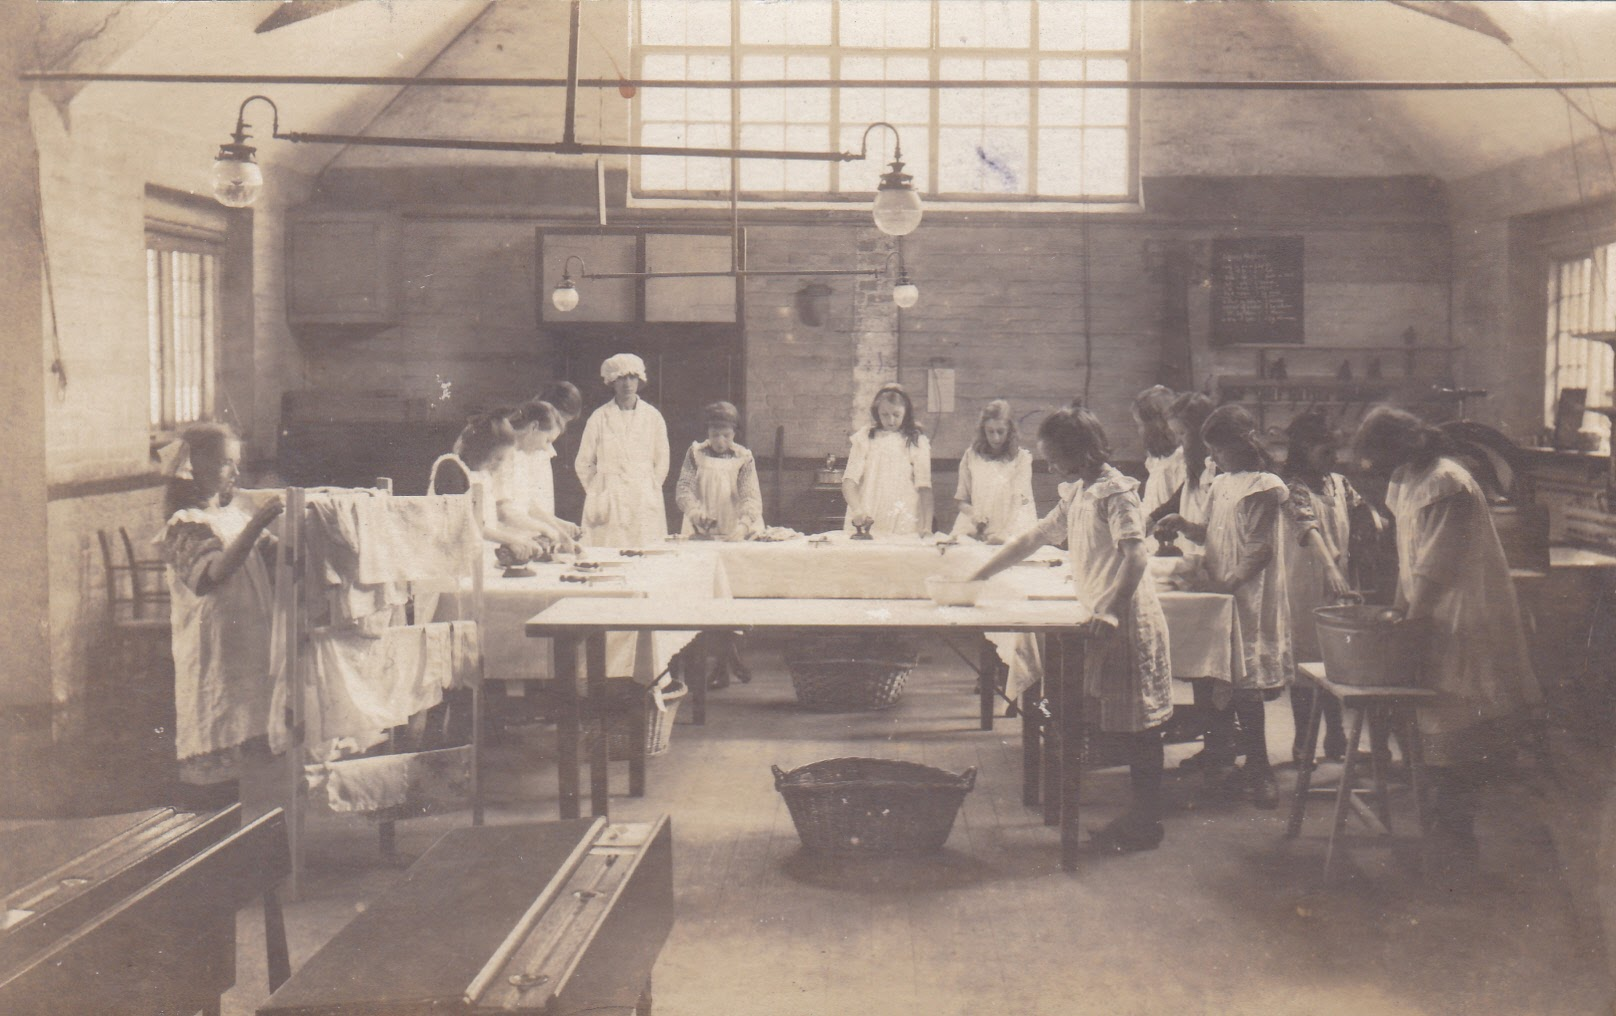 Church of England Laundry Class in Tenterden in 1922